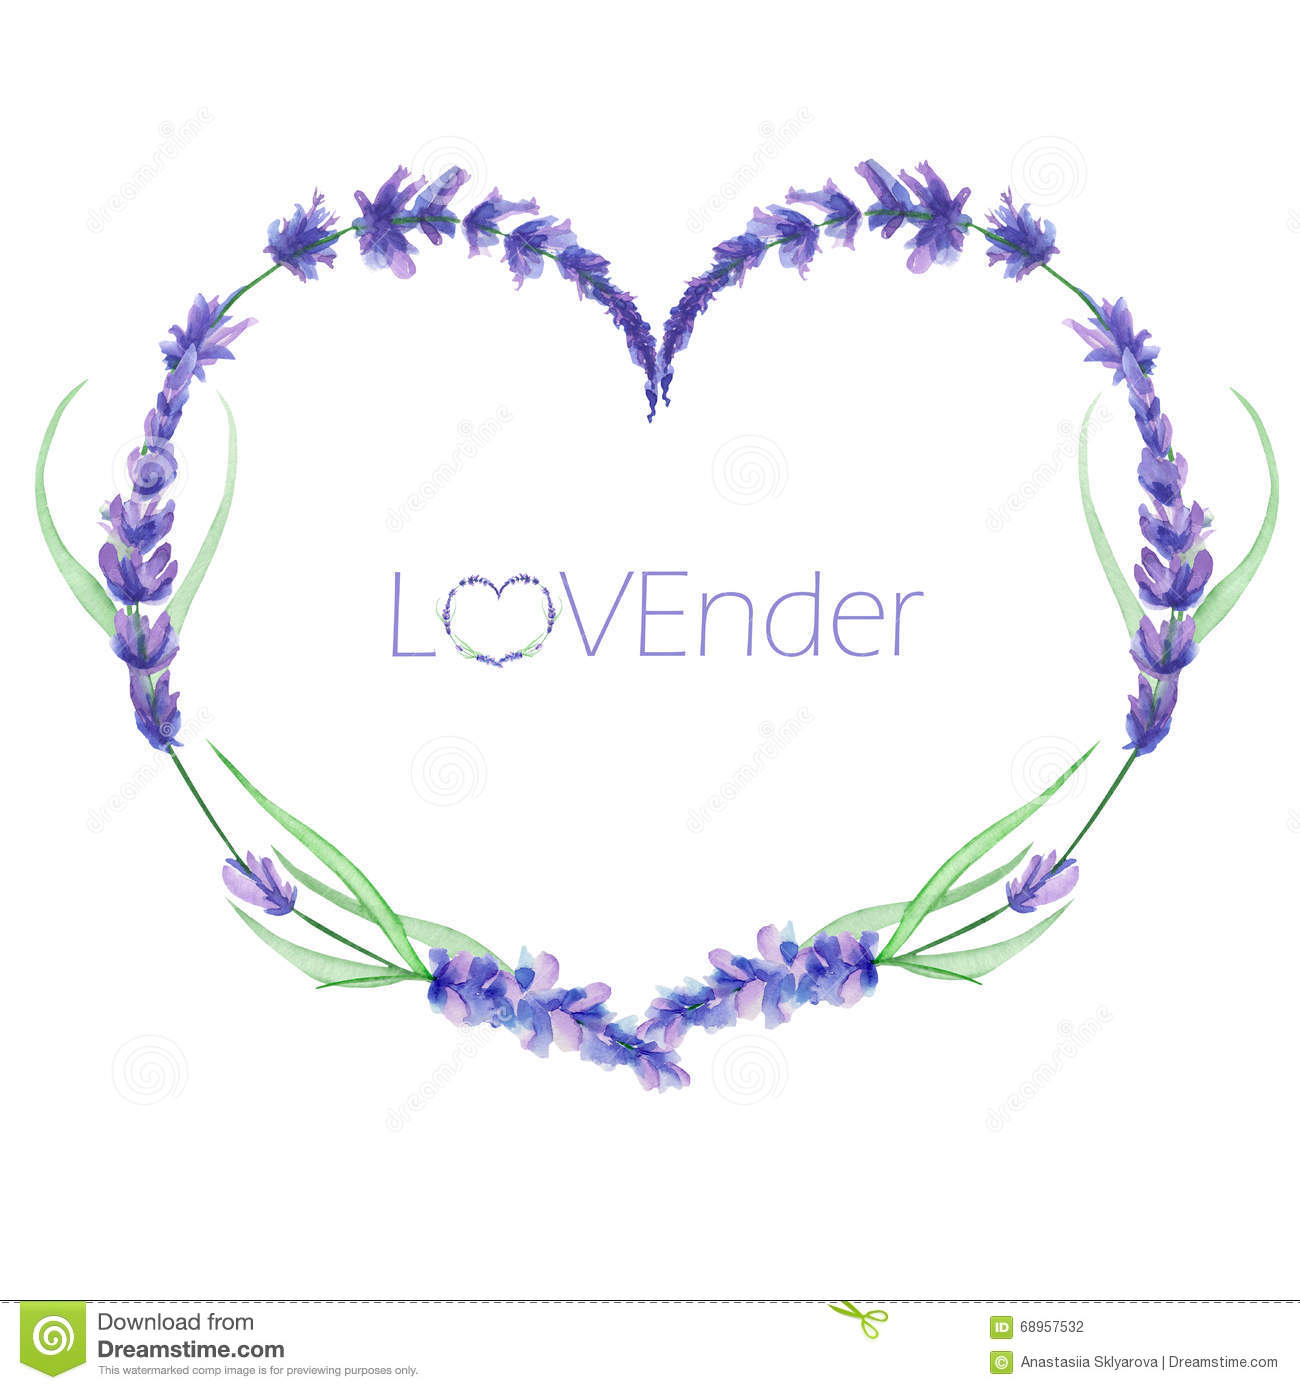 a heart frame wreath frame border with the watercolor lavender flowers wedding invitation